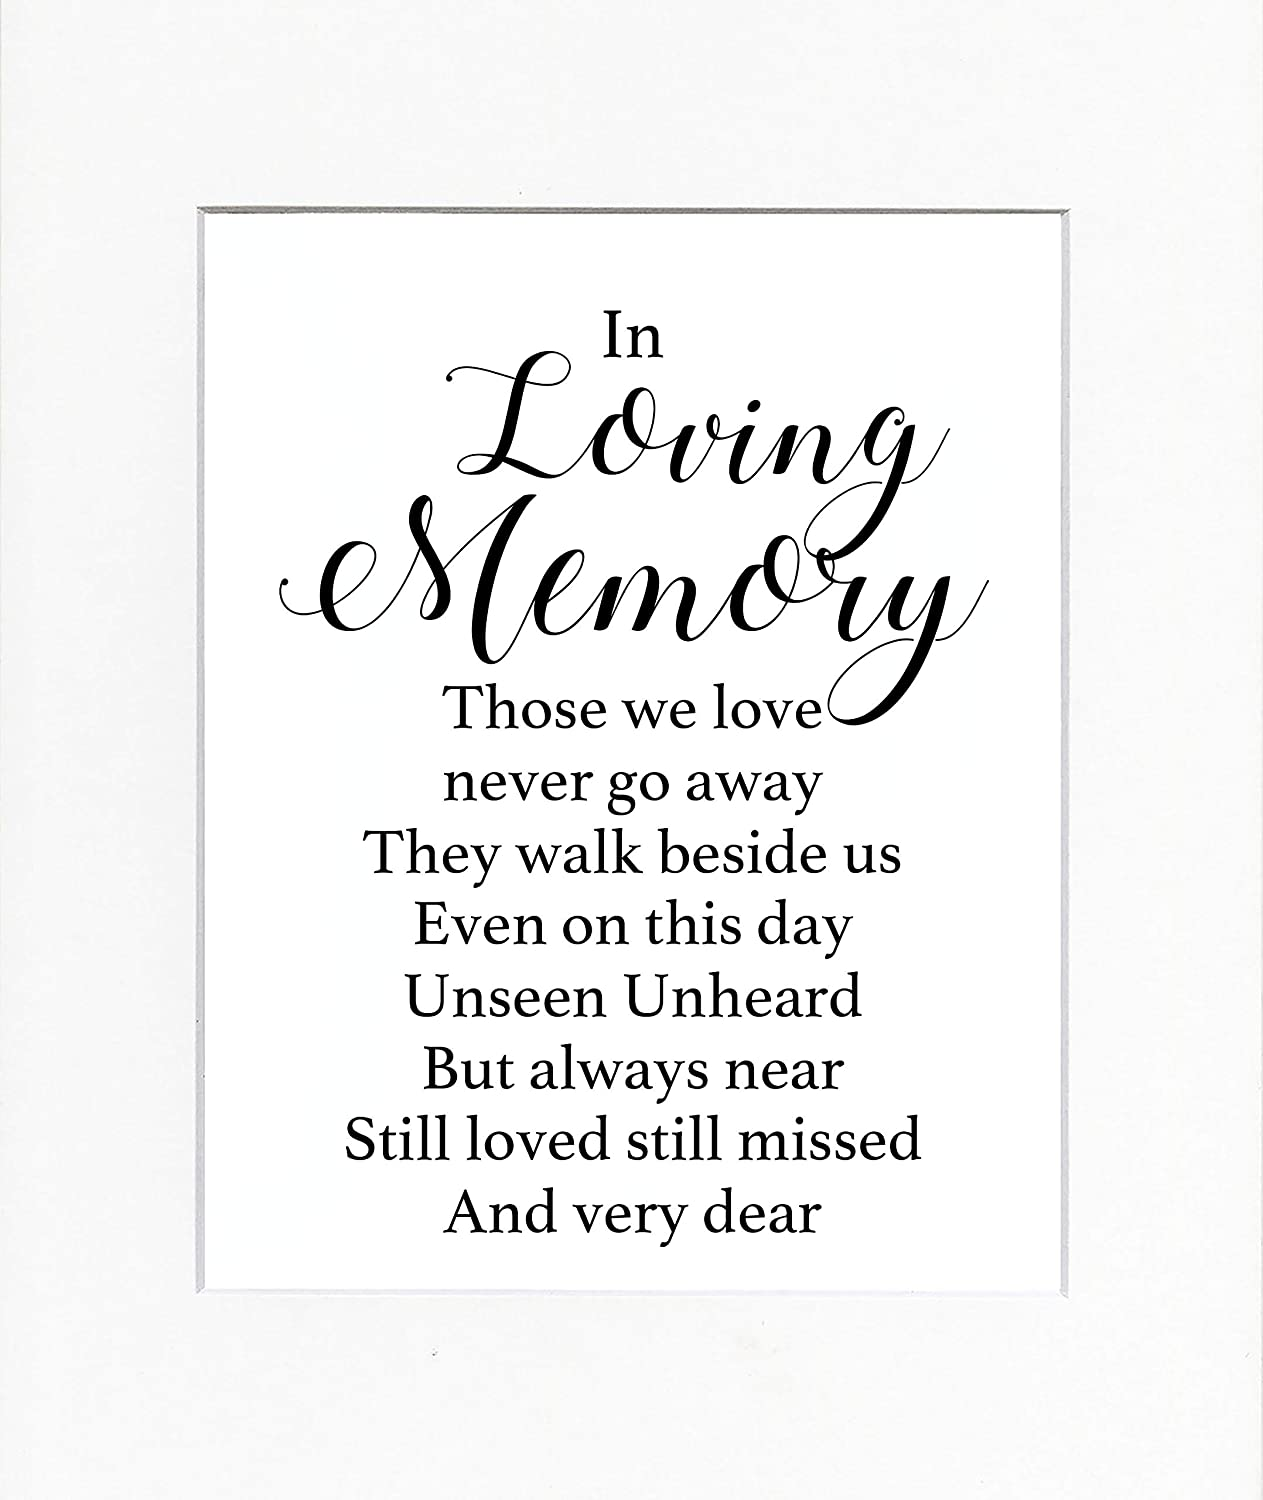 8x10 UNFRAMED PRINT In Loving Memory Those we Love Don't Go Away They Walk Beside us Every Day/Print Sign UNFRAMED/Quote Poem Memorial Remembrance Wedding Home Sign Loving Memory Wall Décor White